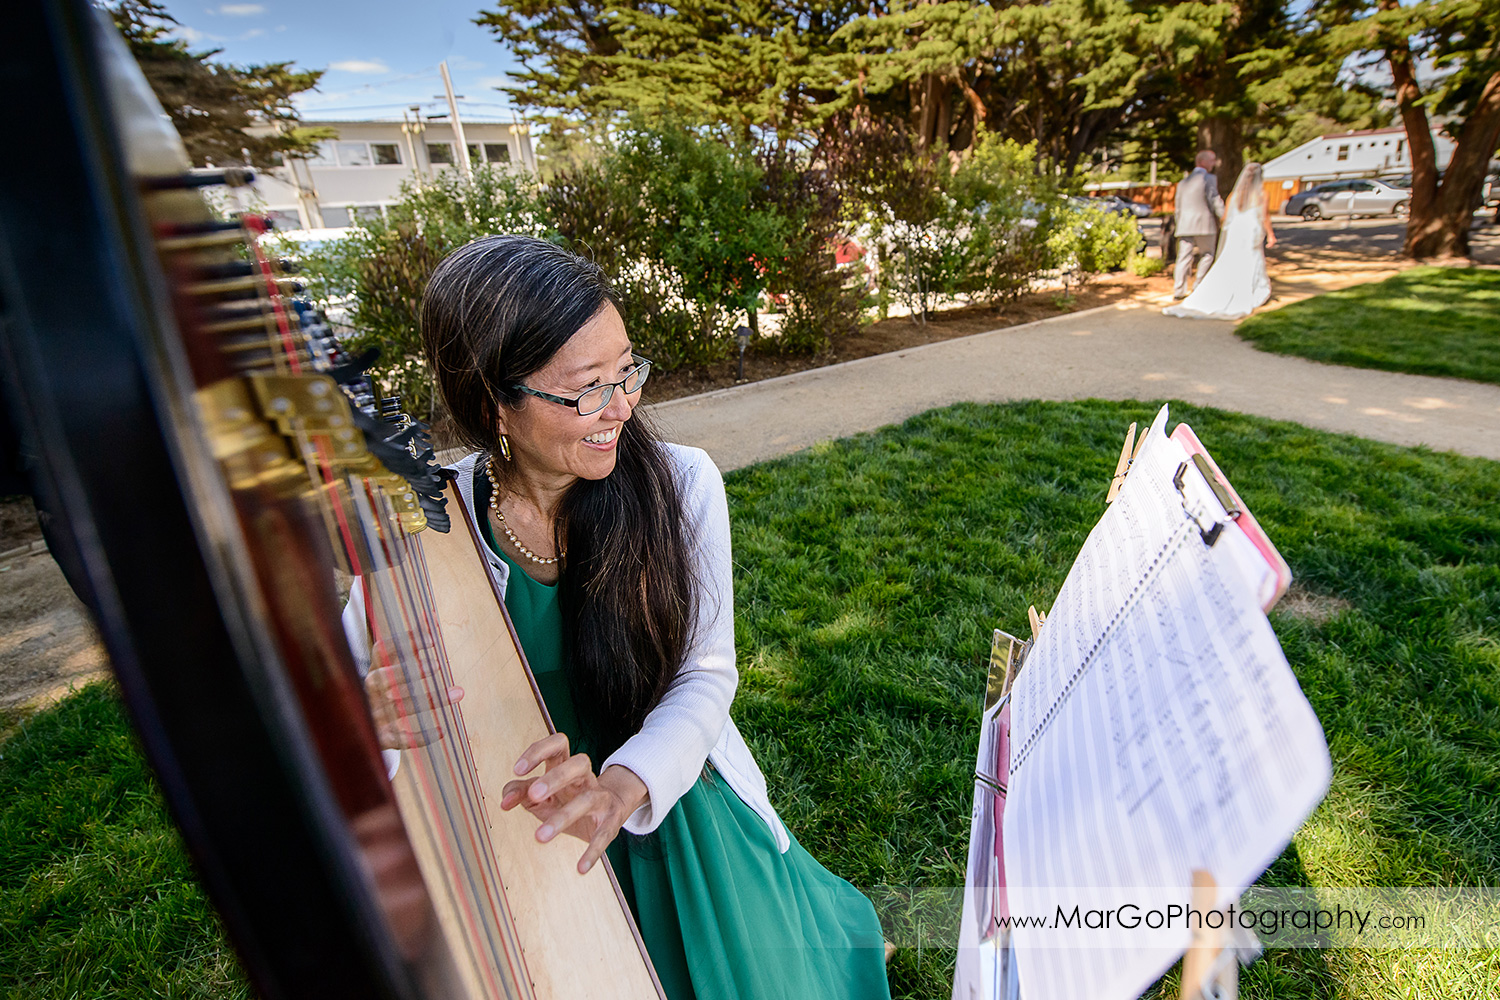 wedding harp player at Mavericks Event Center in Half Moon Bay